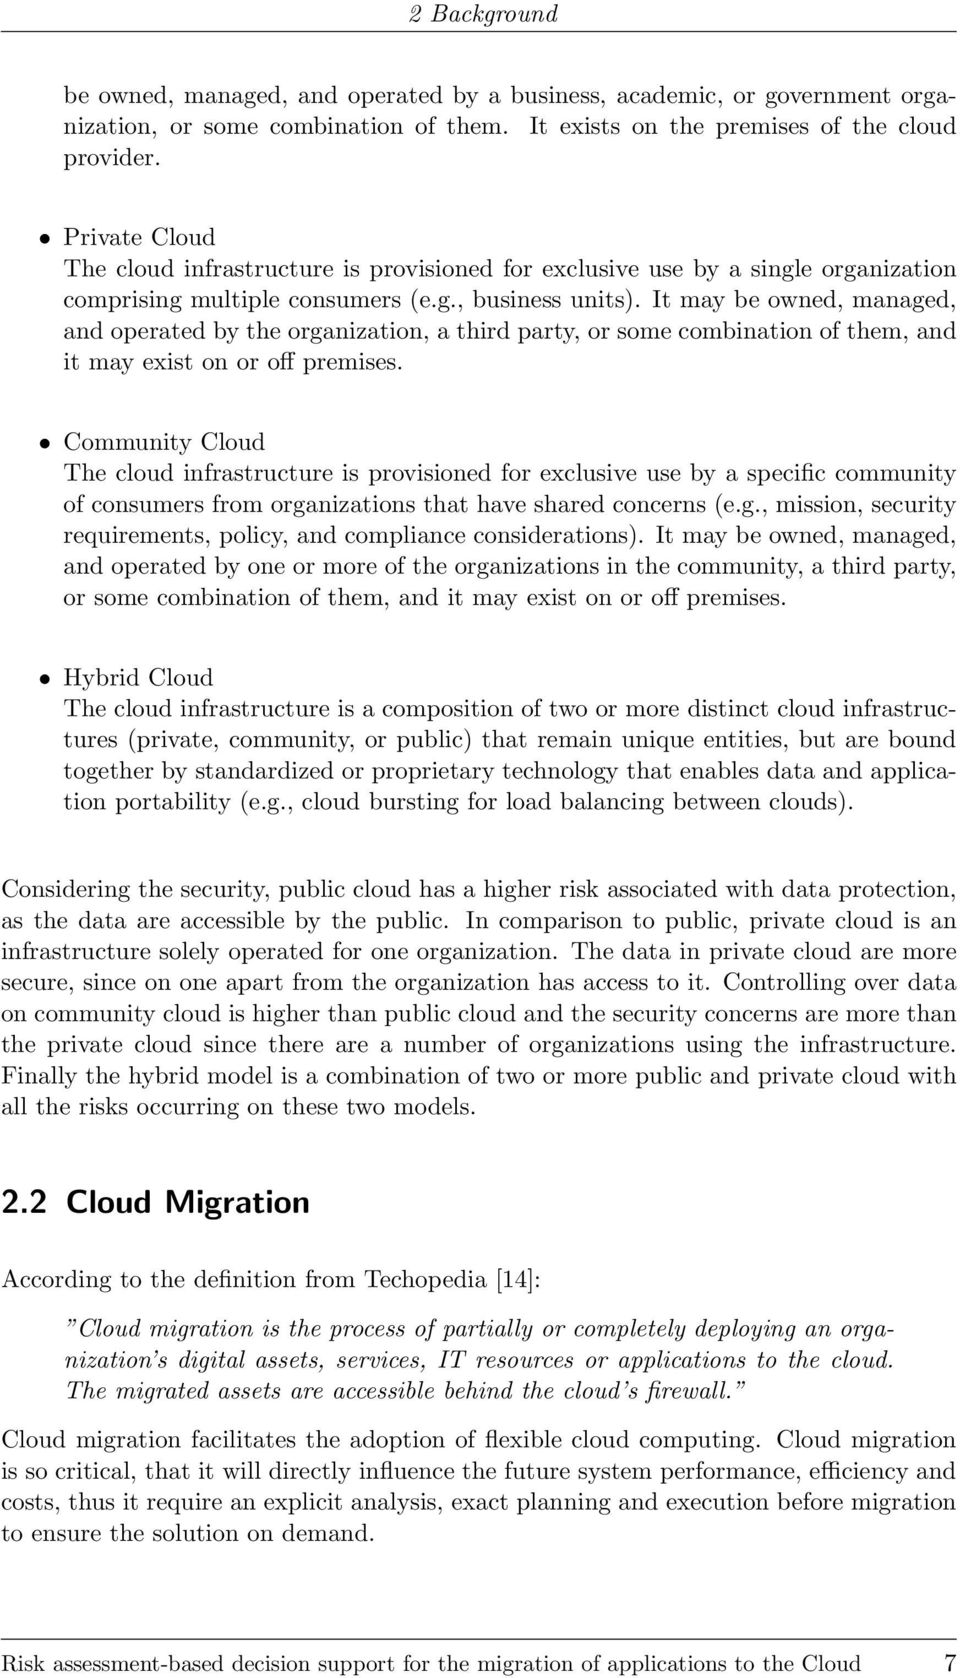 It may be owned, managed, and operated by the organization, a third party, or some combination of them, and it may exist on or off premises.